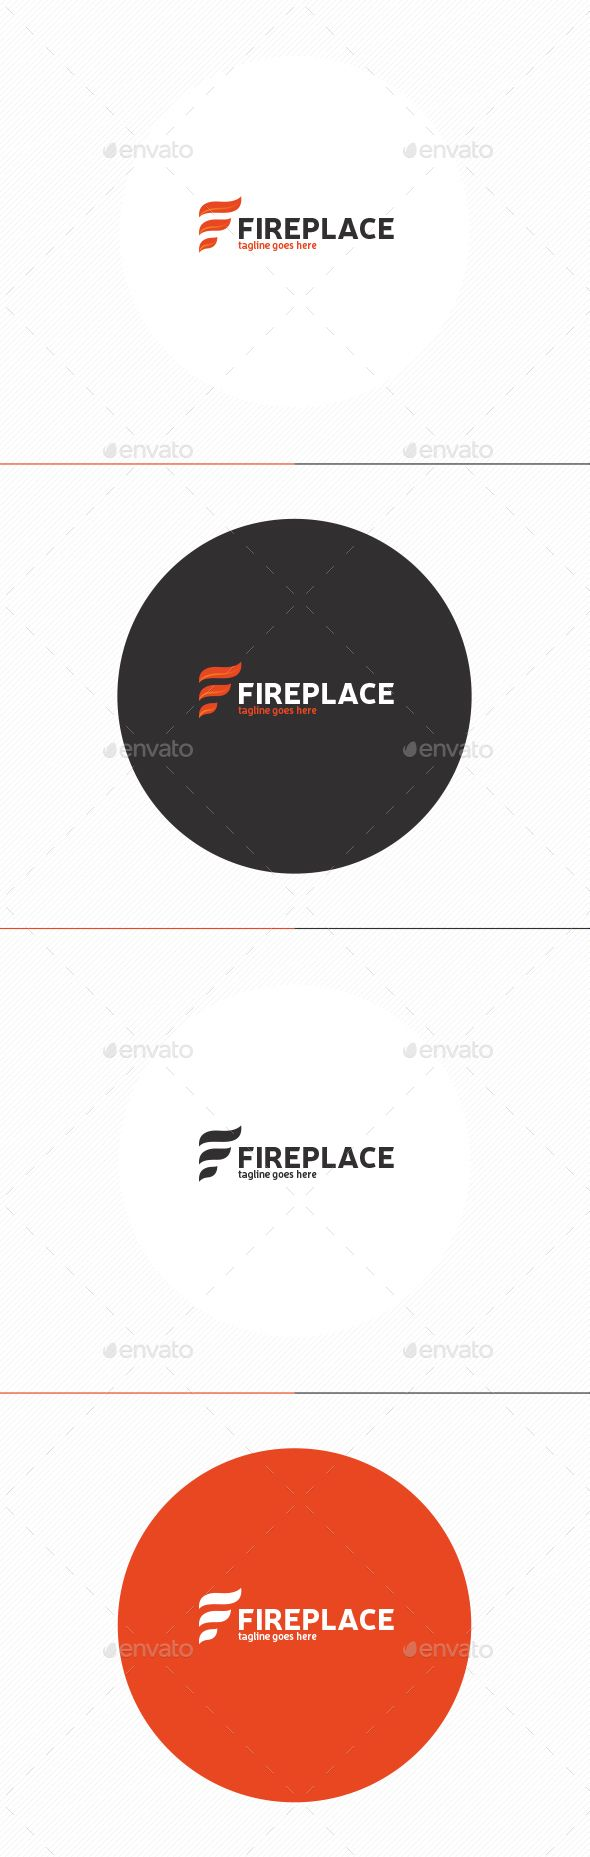 Fire Place � Letter F - Logo Design Template Vector #logotype Download it here: http://graphicriver.net/item/fire-place-logo-letter-f/13566274?s_rank=802?ref=nesto